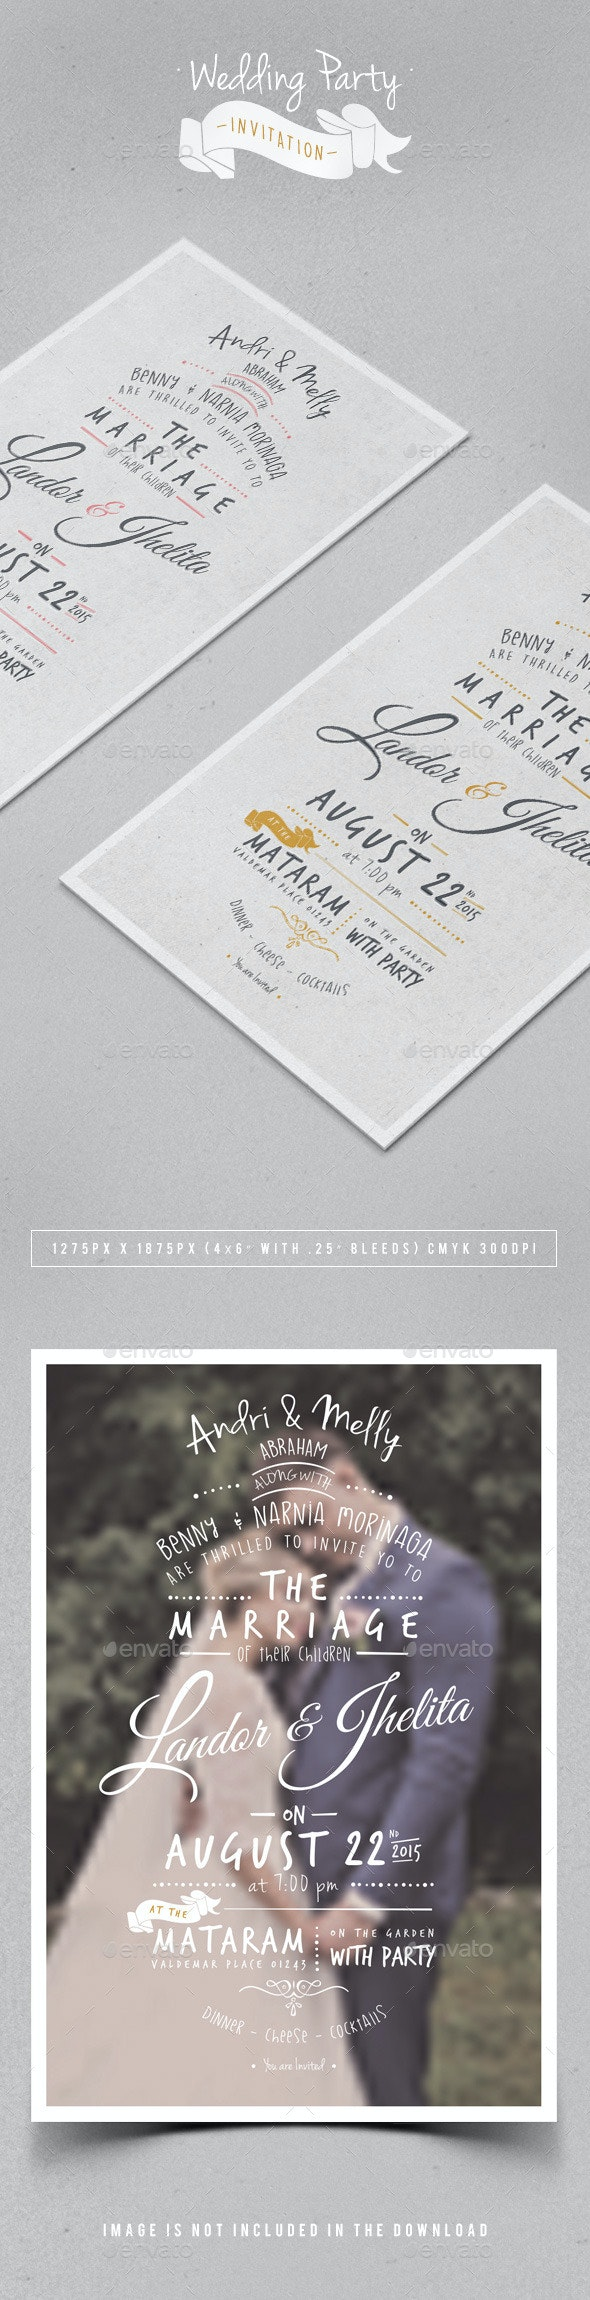 Wedding Party Invitation - Weddings Cards & Invites